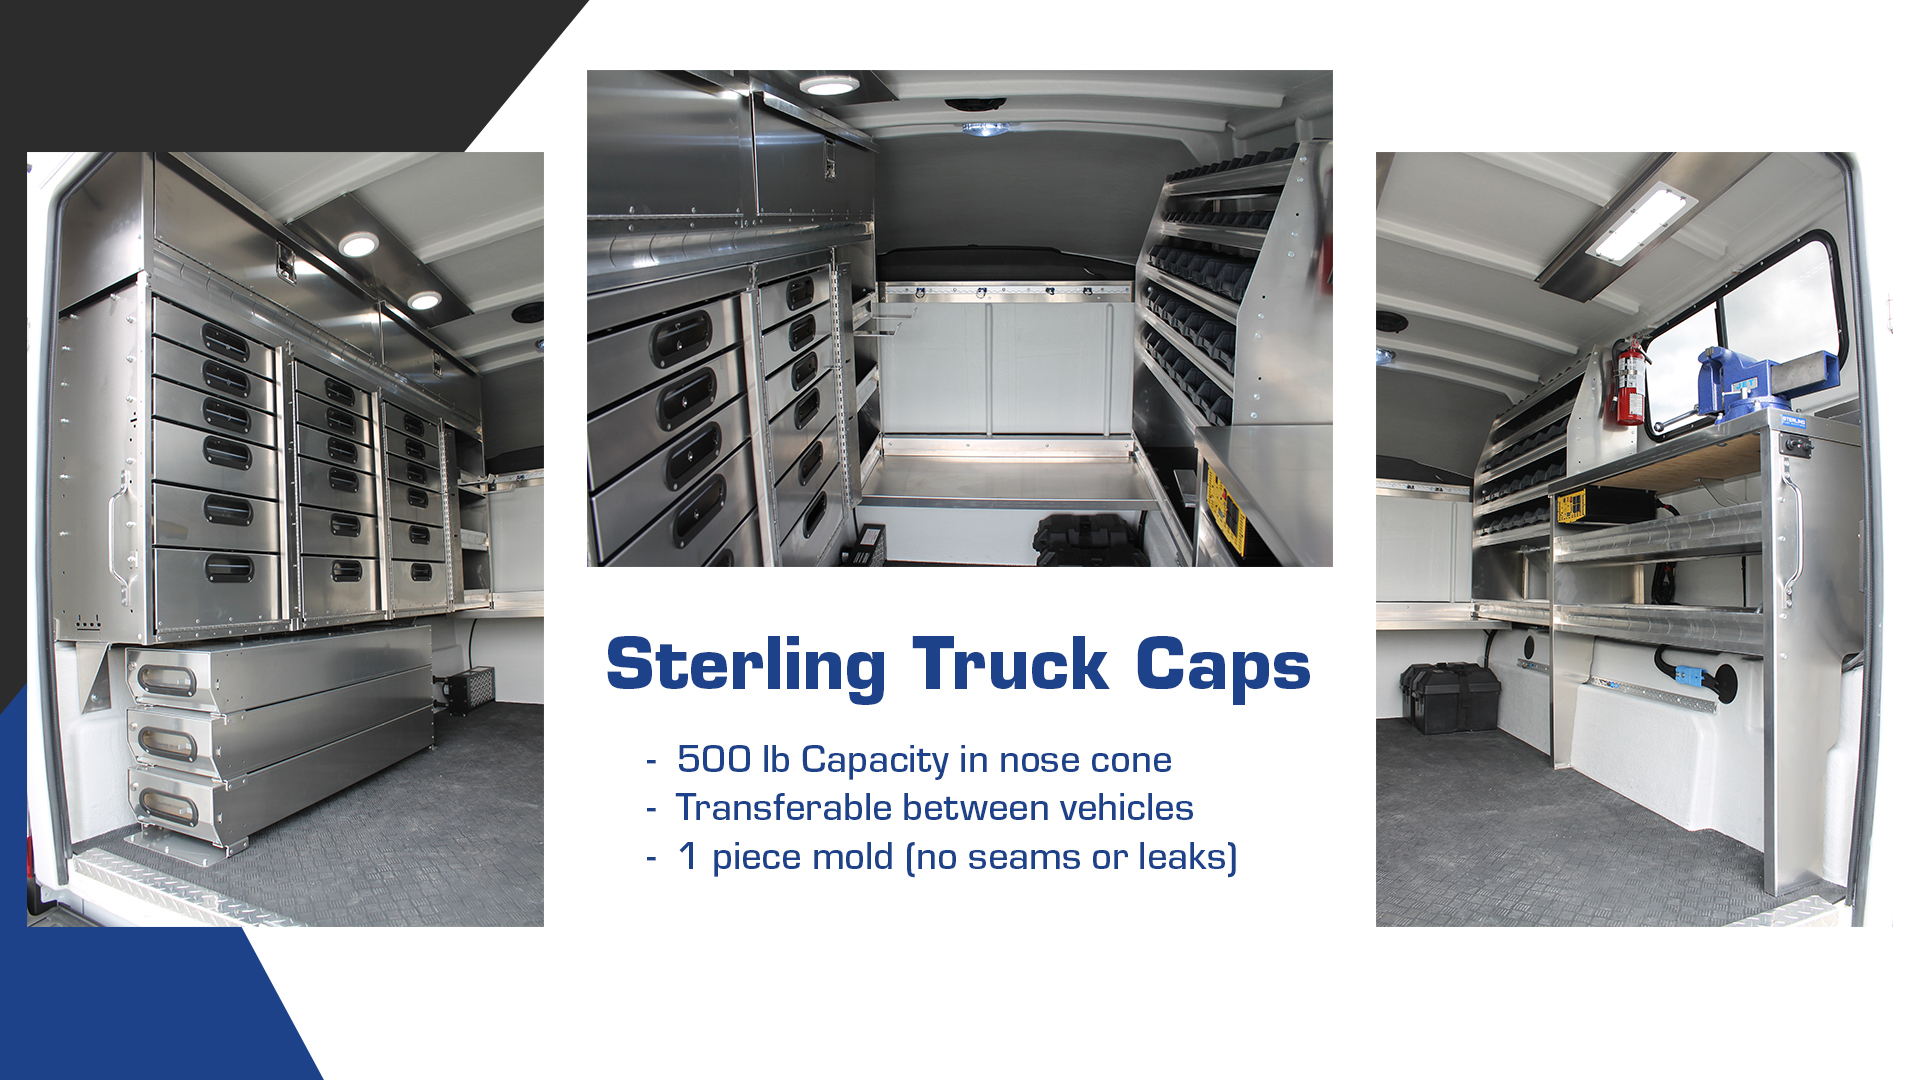 Sterling Truck Capsules have a 500 lb capacity in nose cone, are transferable between vehicles and are made of a 1 piece mold so there are no seams or leaks.